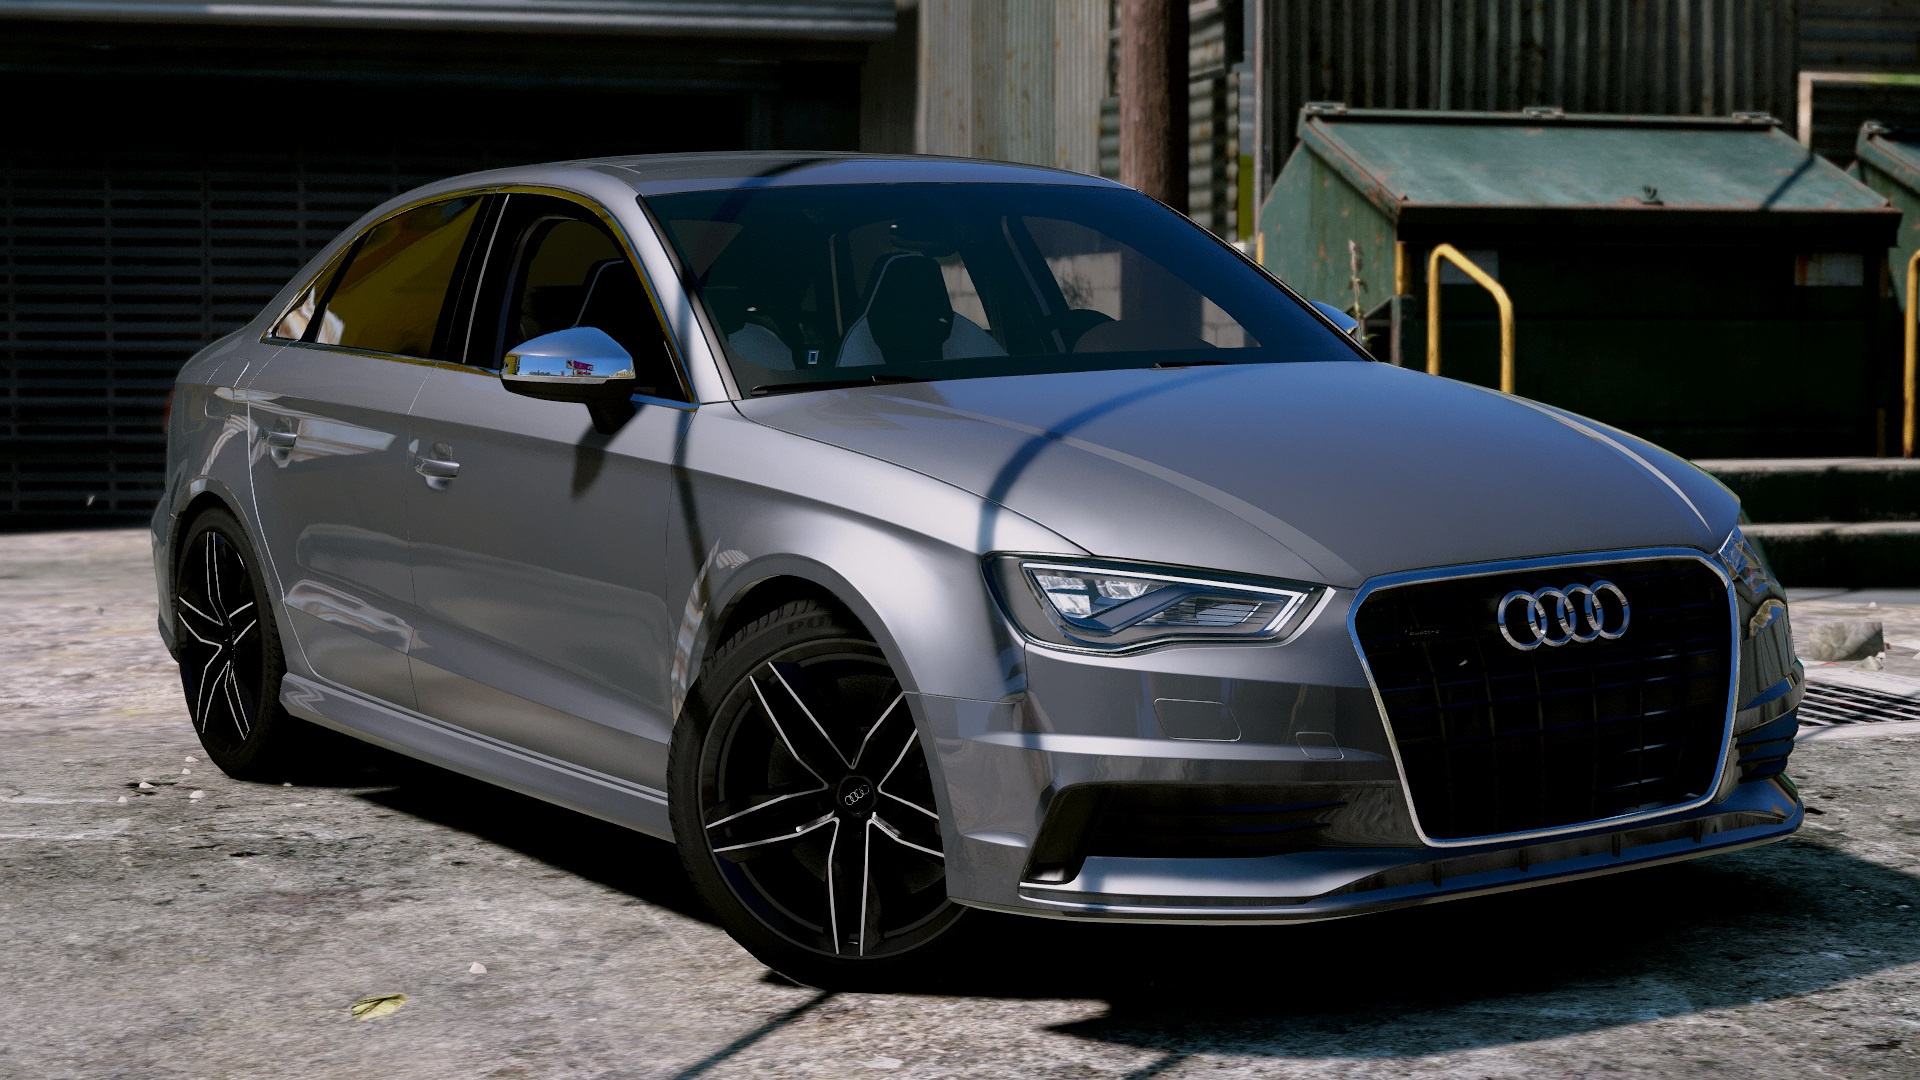 audi a3 sedan 2 0t 2015 gta5. Black Bedroom Furniture Sets. Home Design Ideas